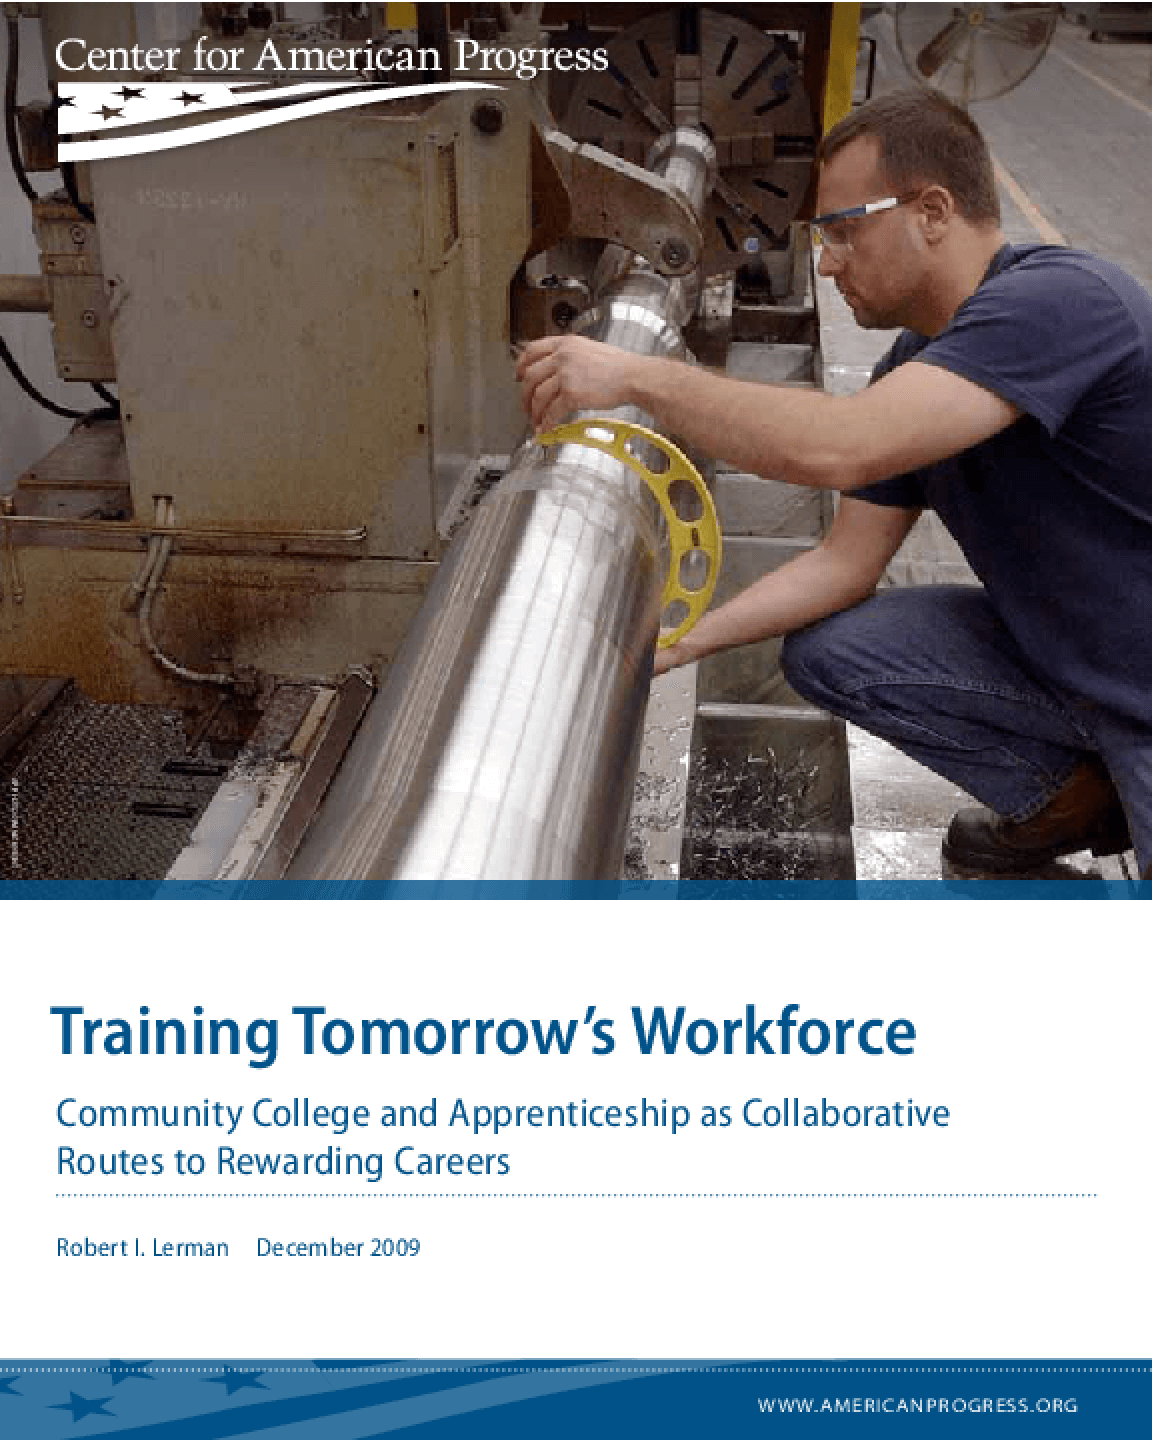 Training Tomorrow's Workforce: Community College and Apprenticeship as Collaborative Routes to Rewarding Careers